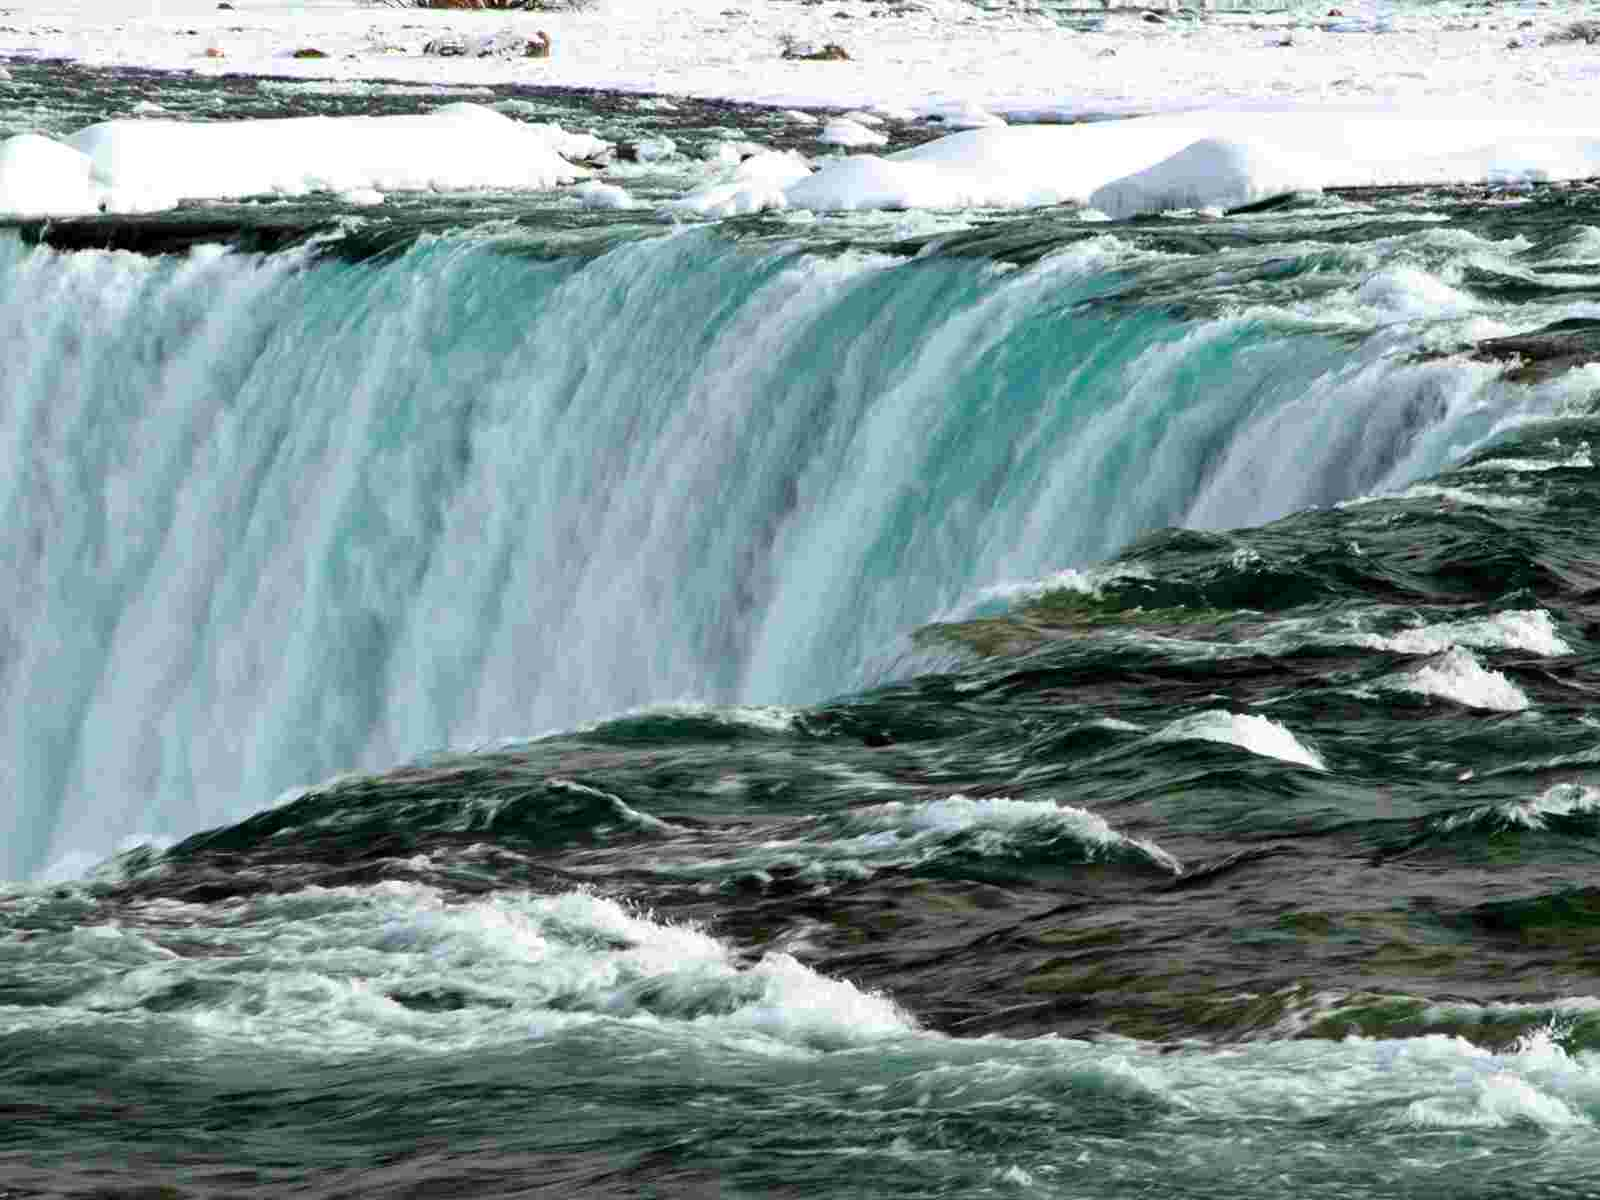 niagara falls ontario canada photos free download images